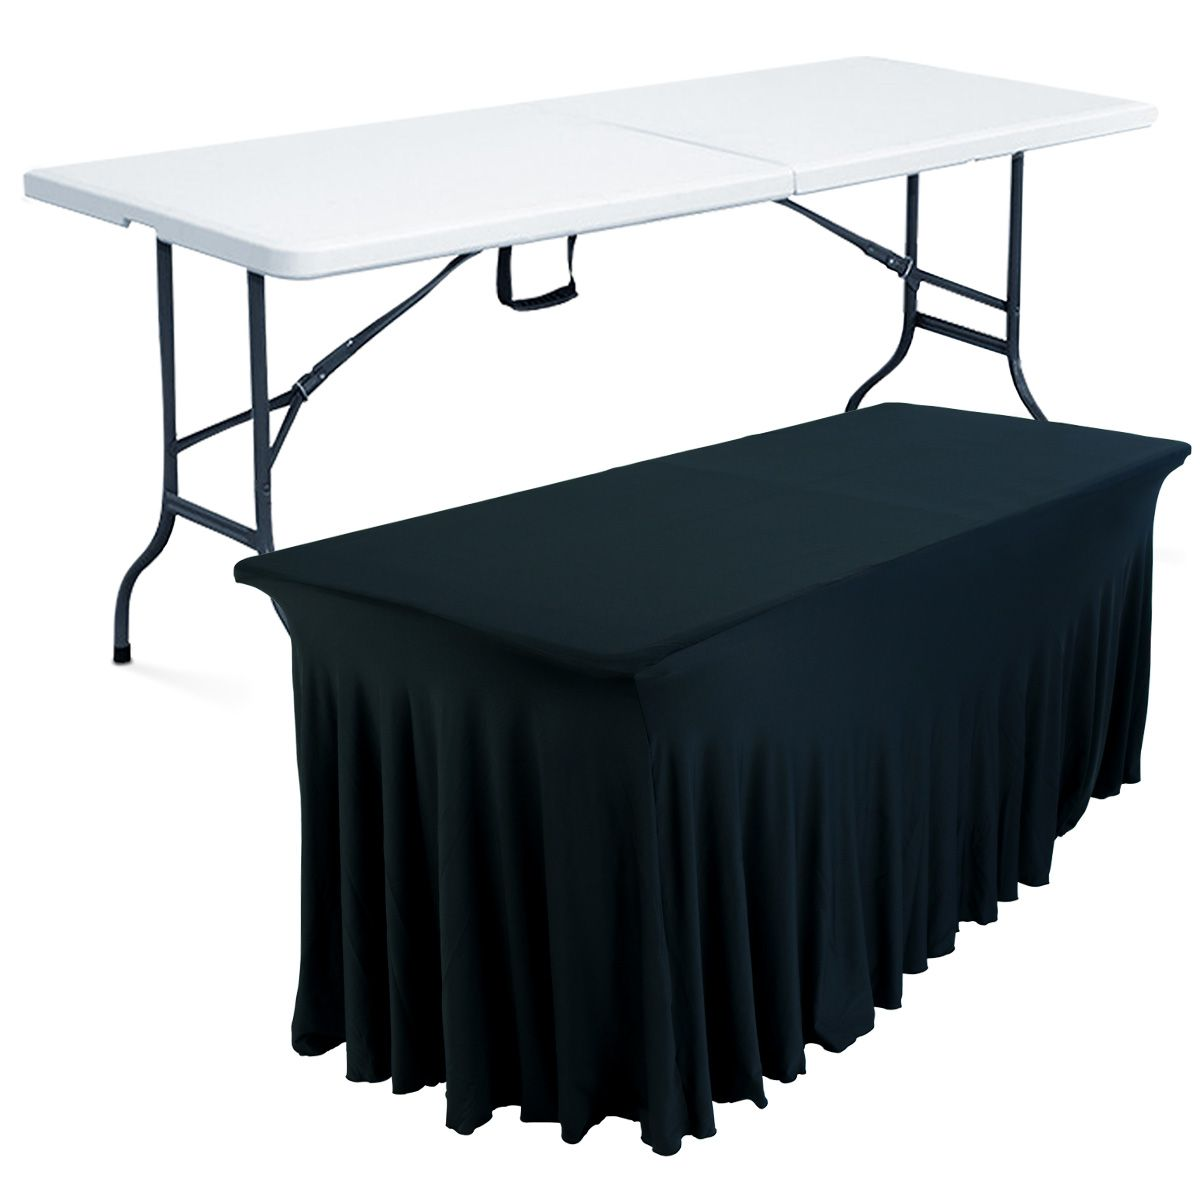 Nappe Pour Table Exterieur Emejing Nappe Pour Table Salon De Jardin Gallery Awesome